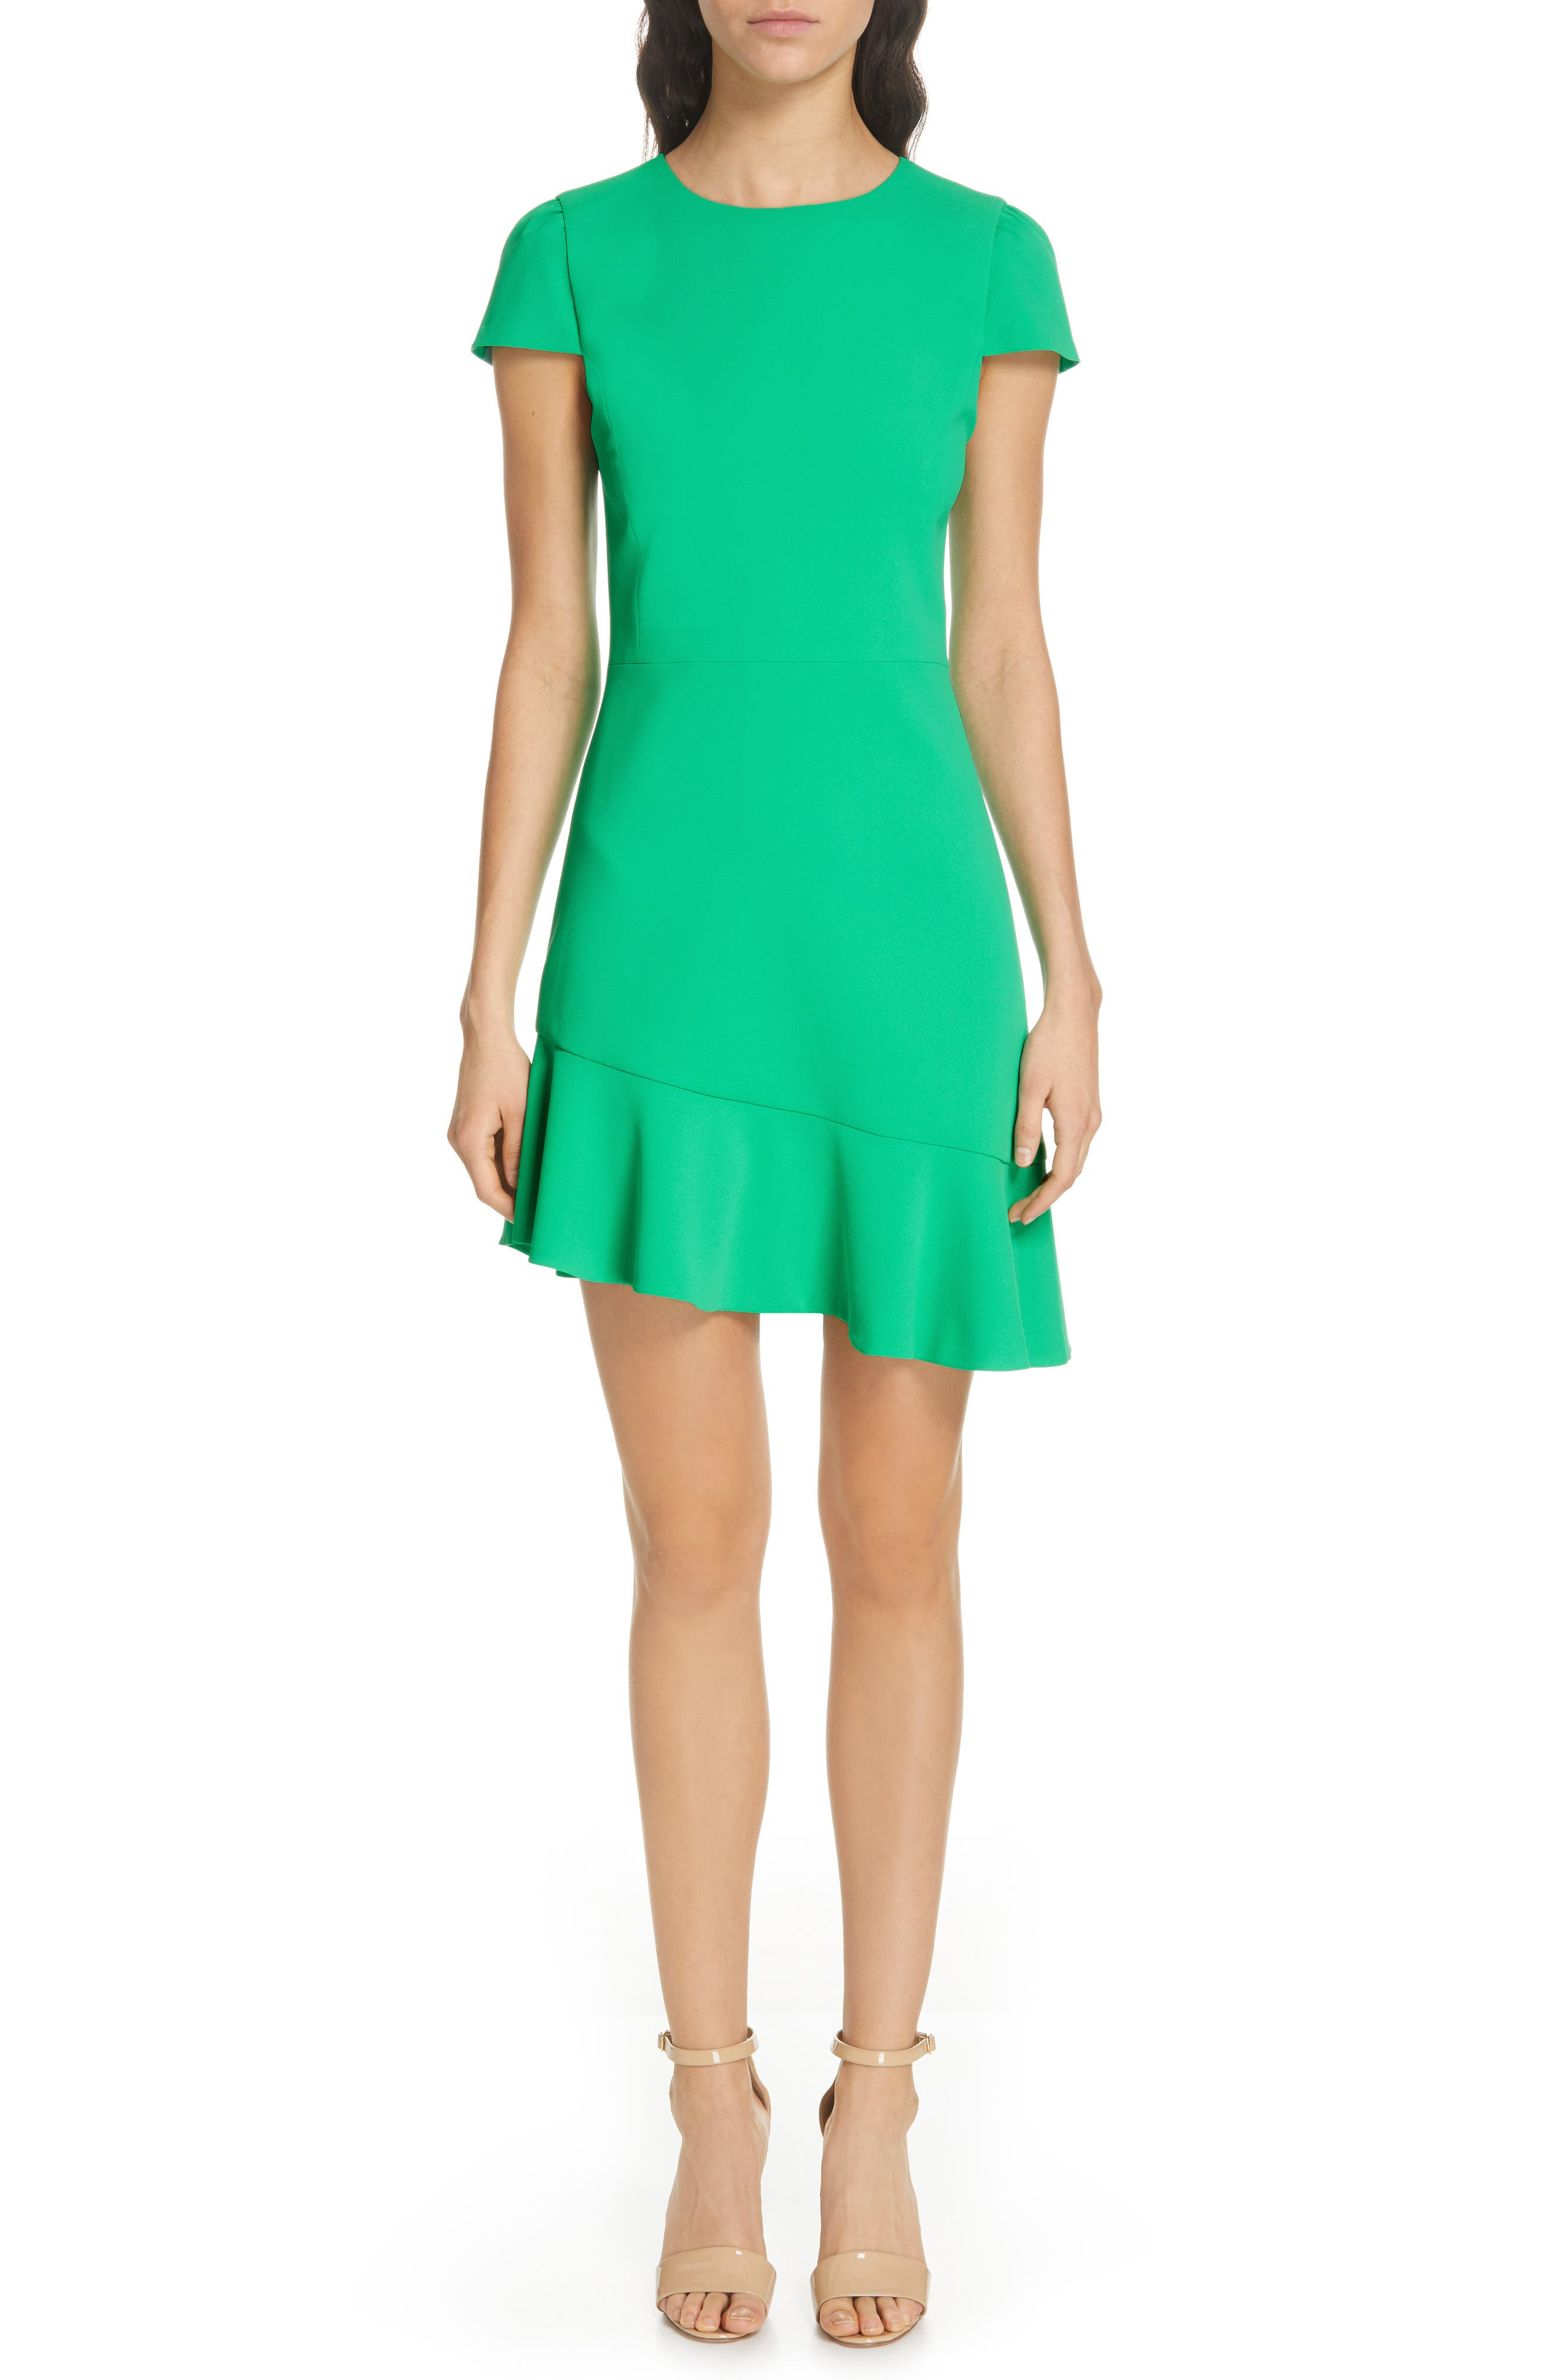 Alice + Olivia Fable Asymmetrical Ruffle Dress, Green